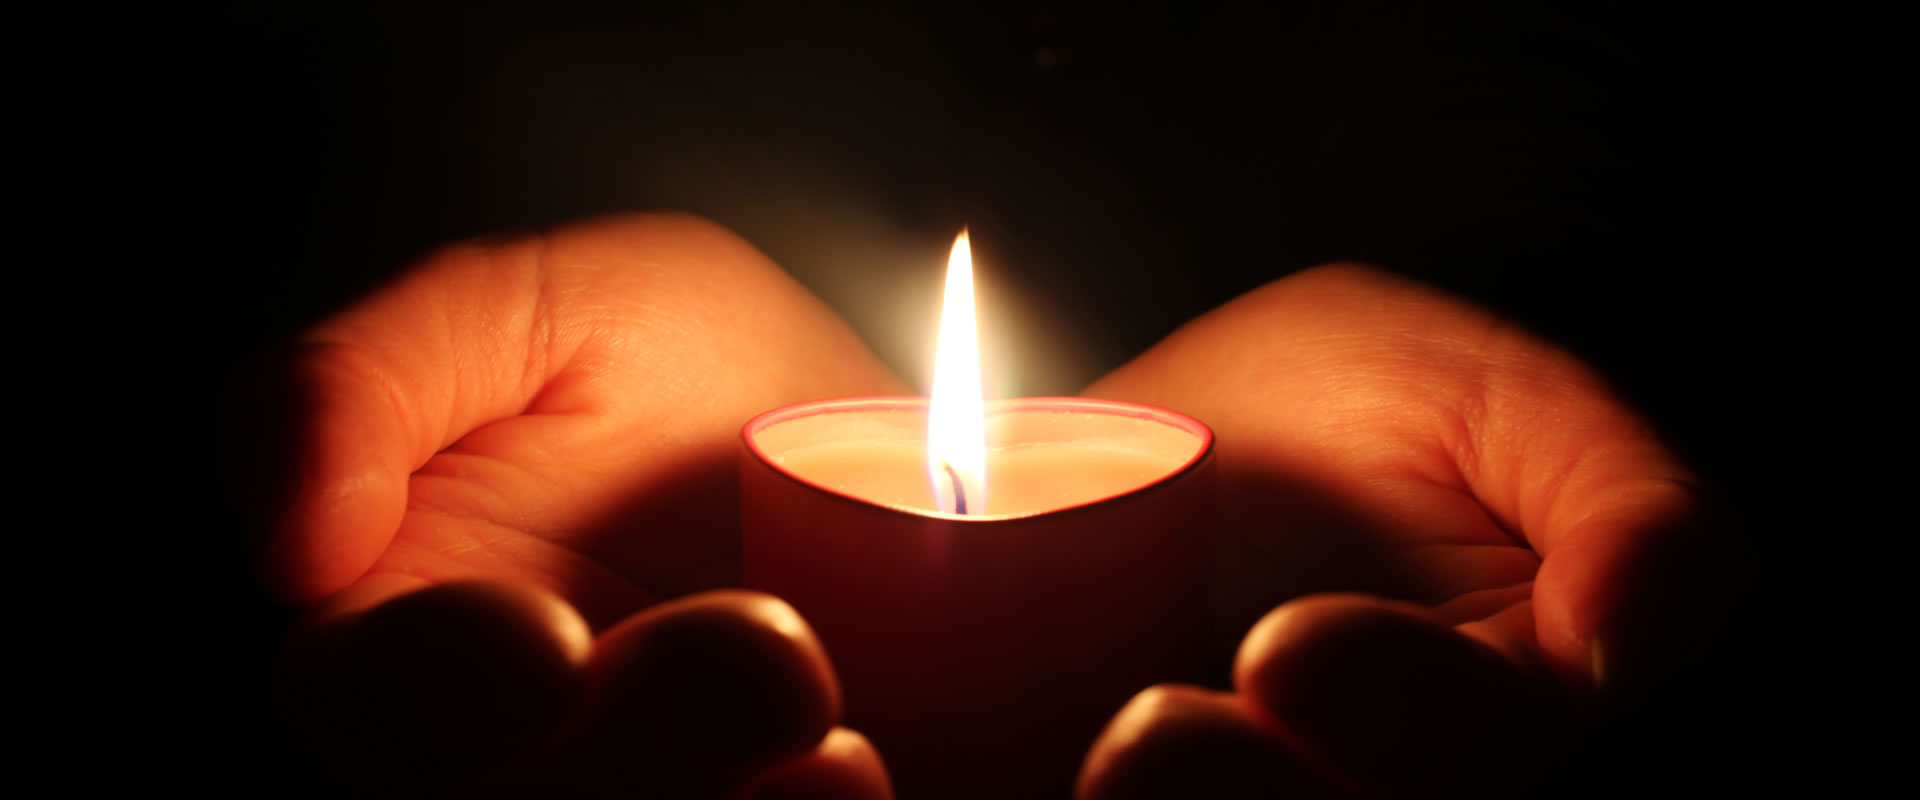 Hand Held Candle in The Dark